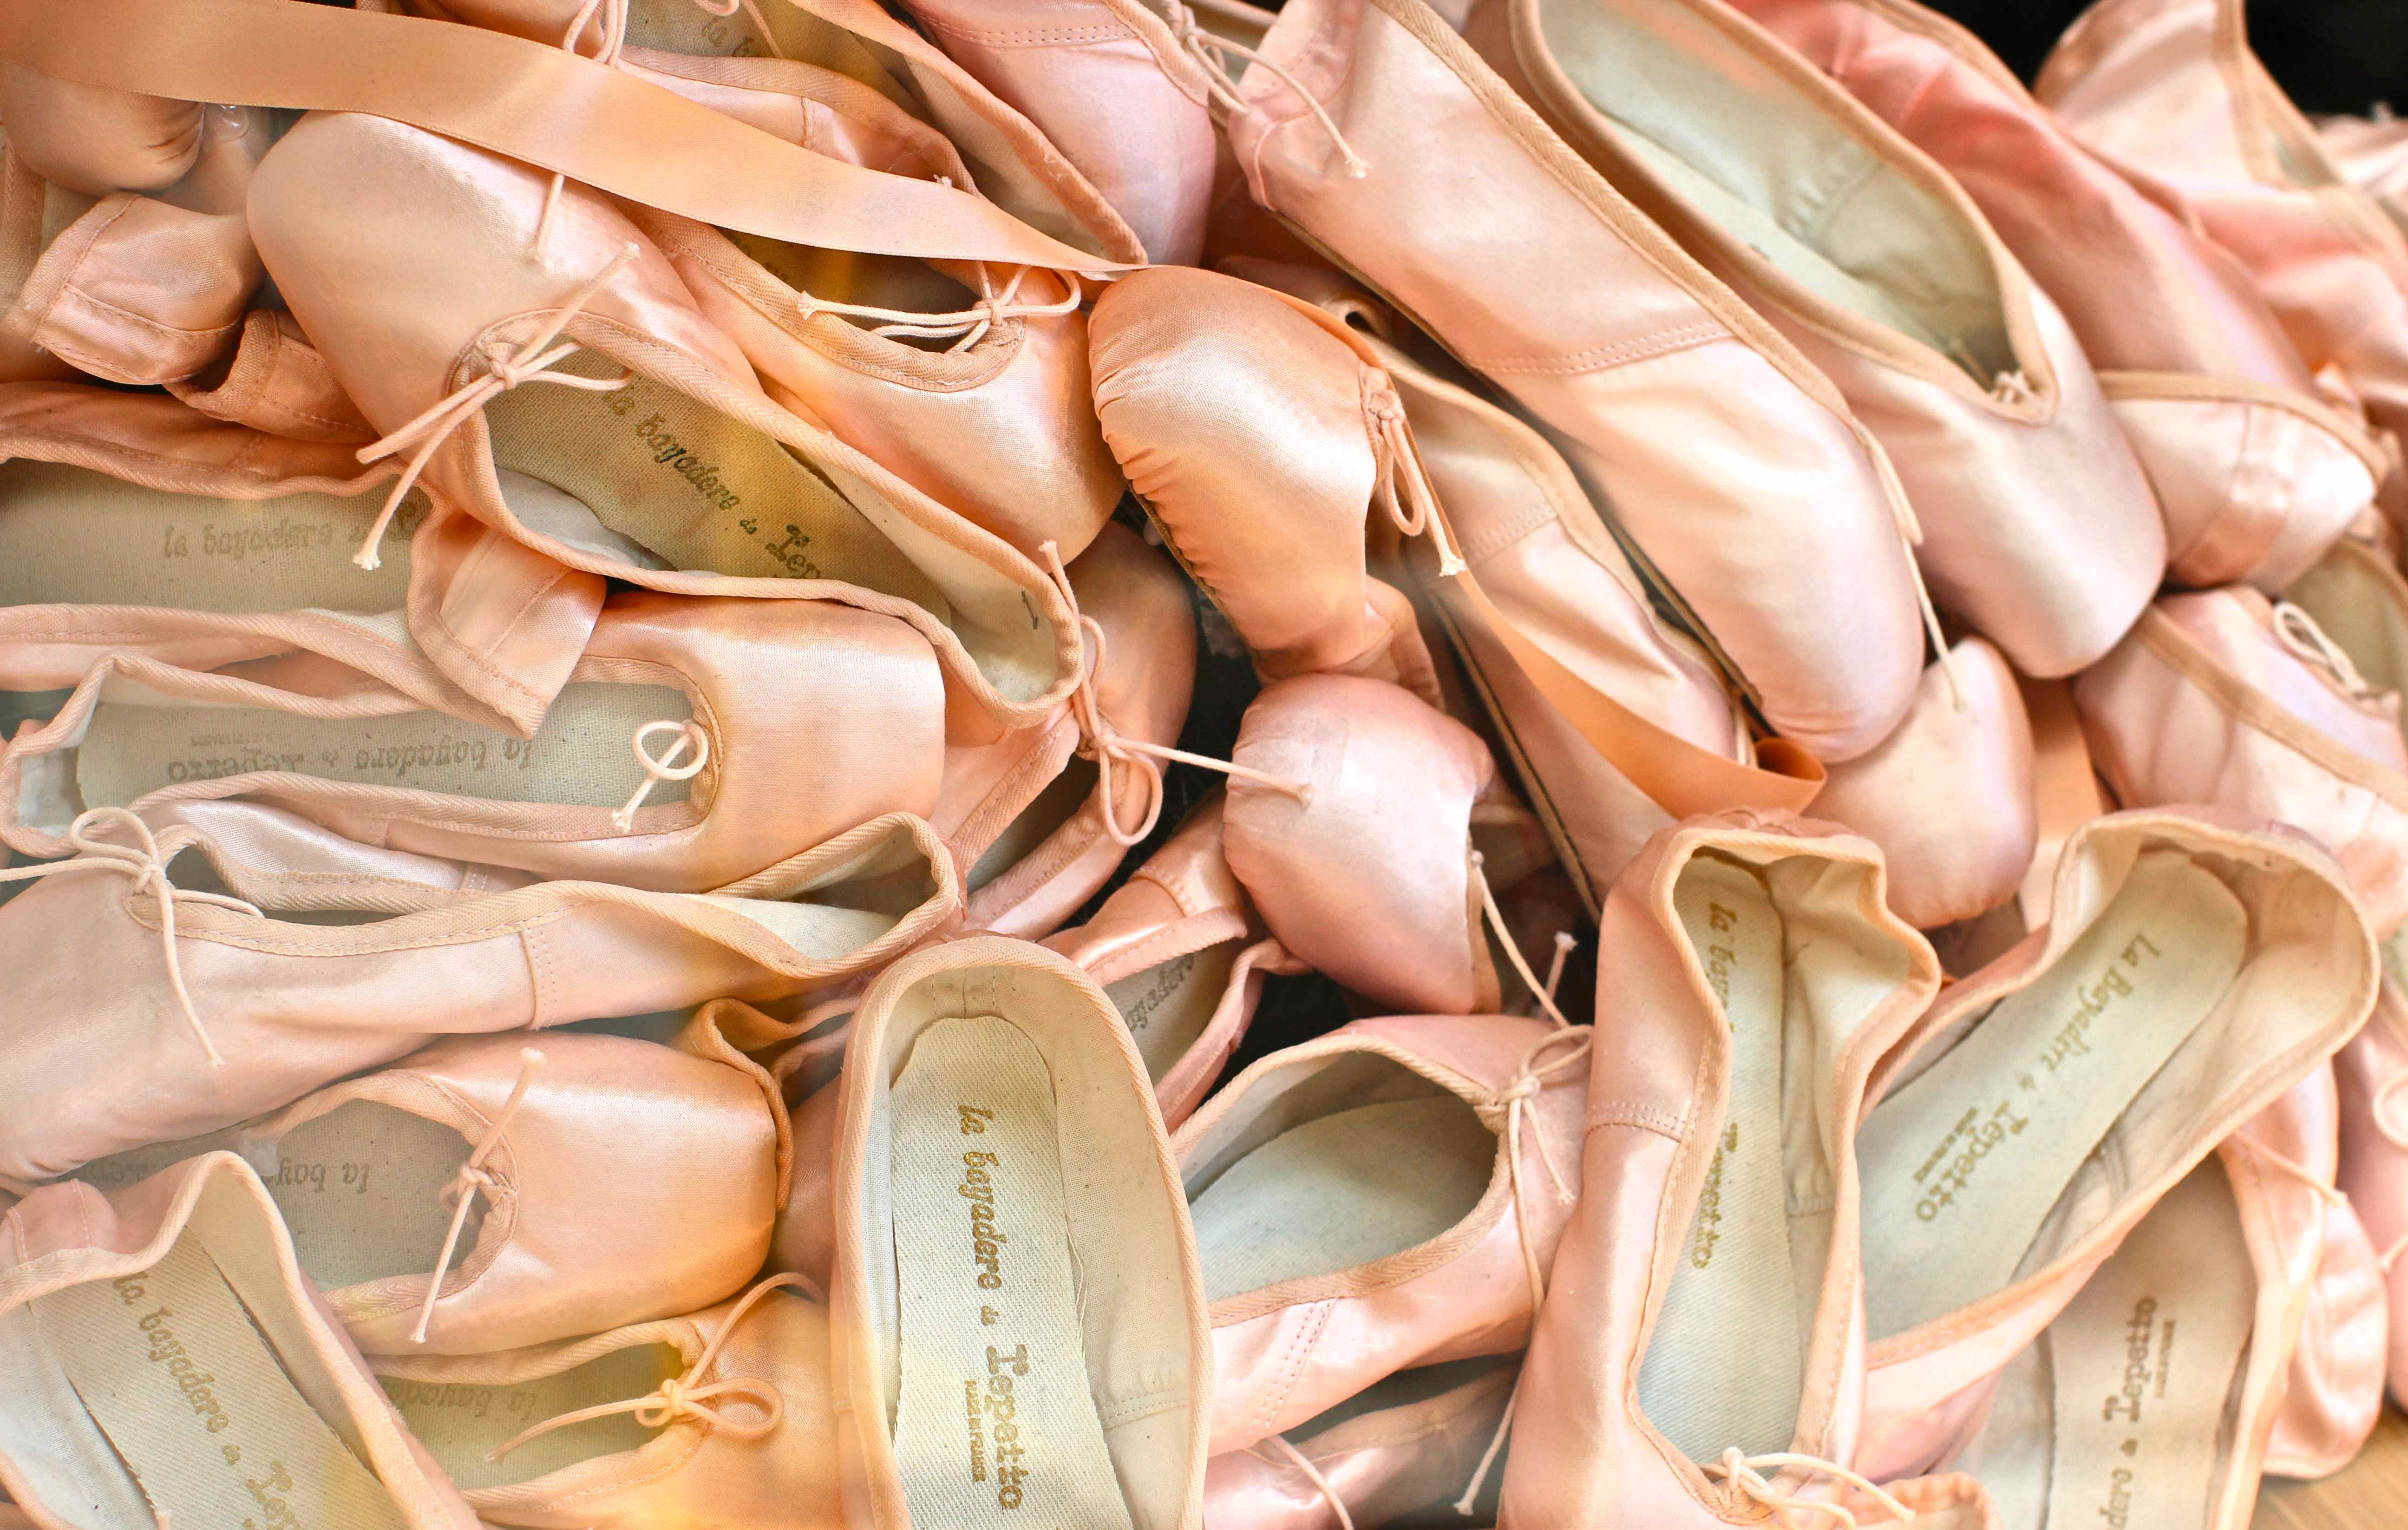 lepetto ballet shoes